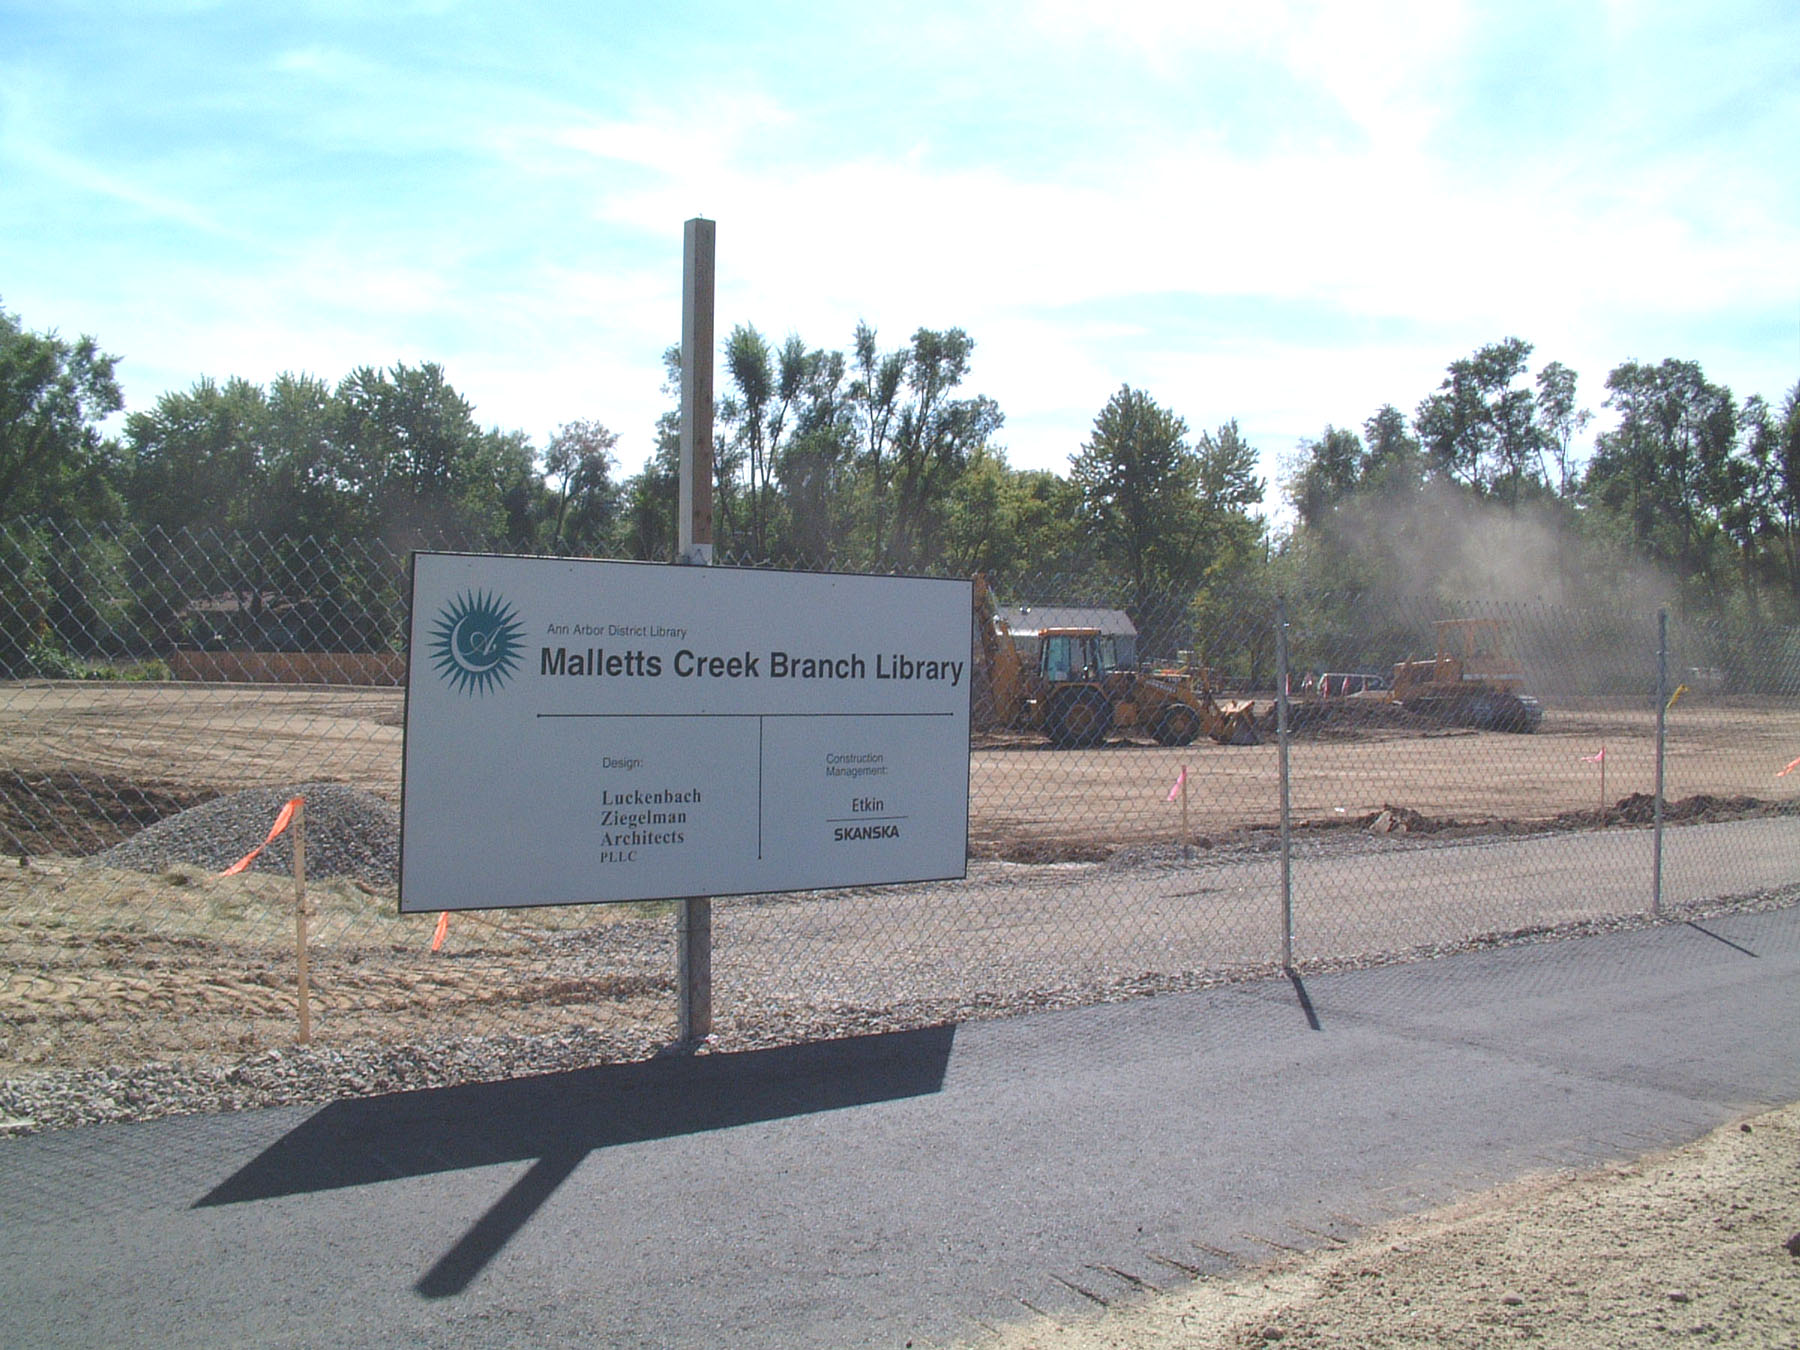 Malletts Creek Branch, ground breaking, construction site sign, 2002 image